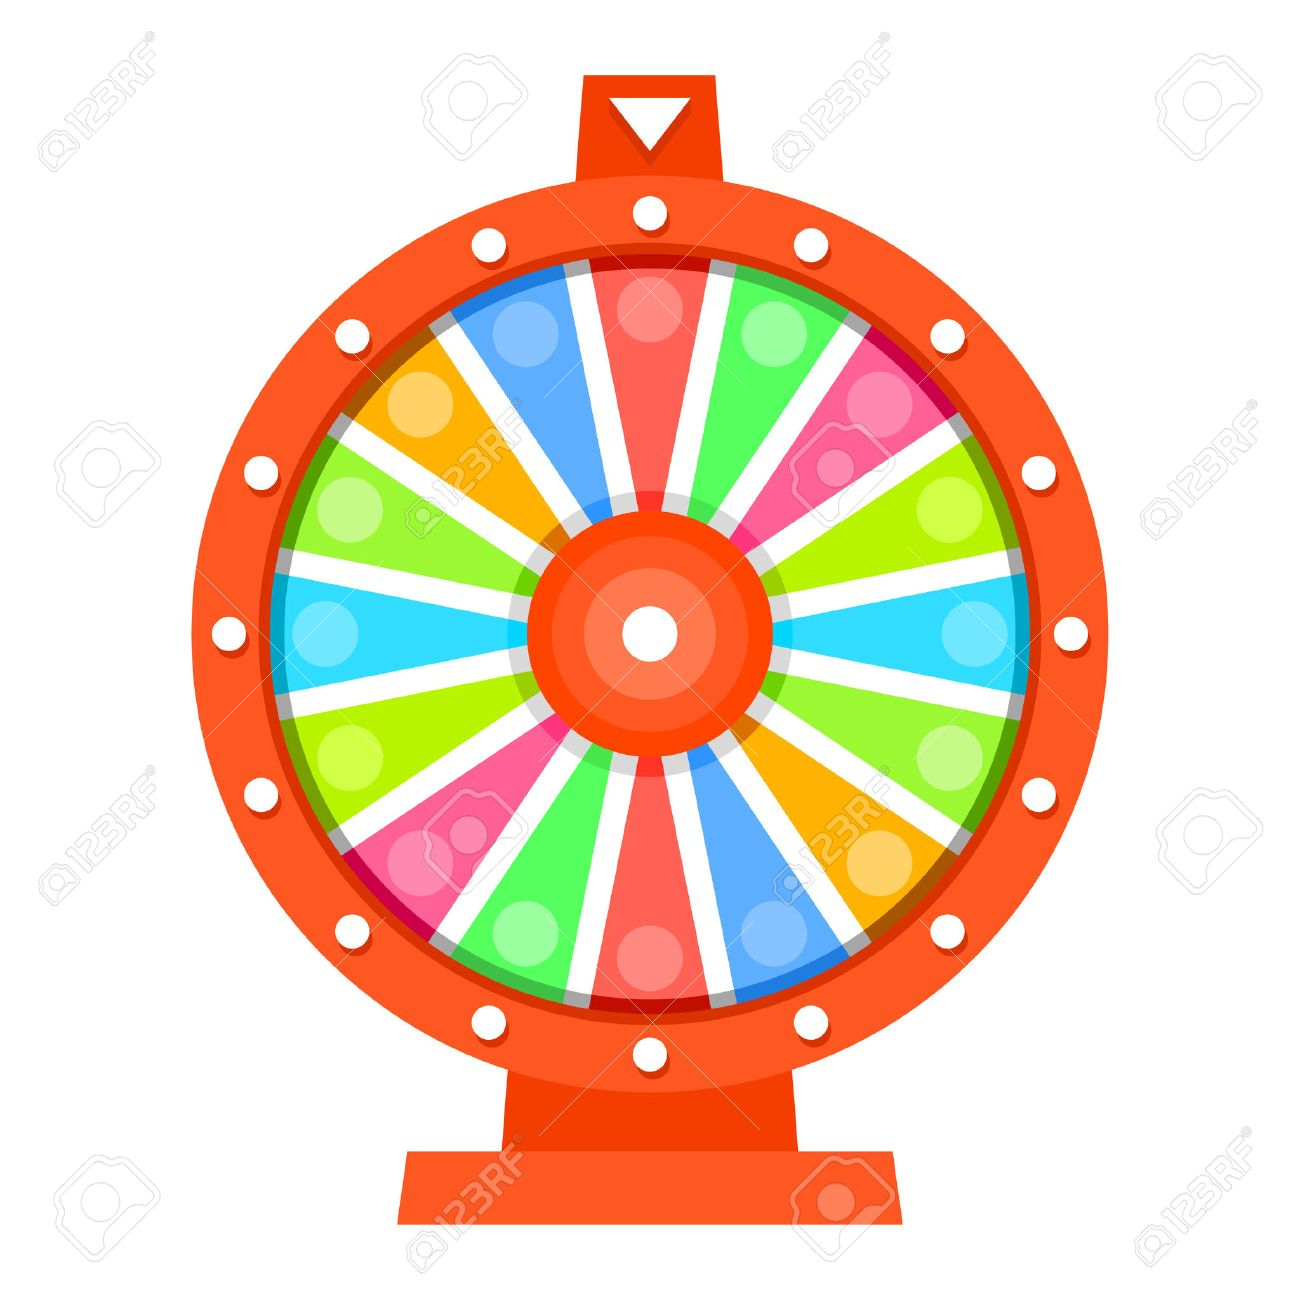 Wheel of fortune flat design template.